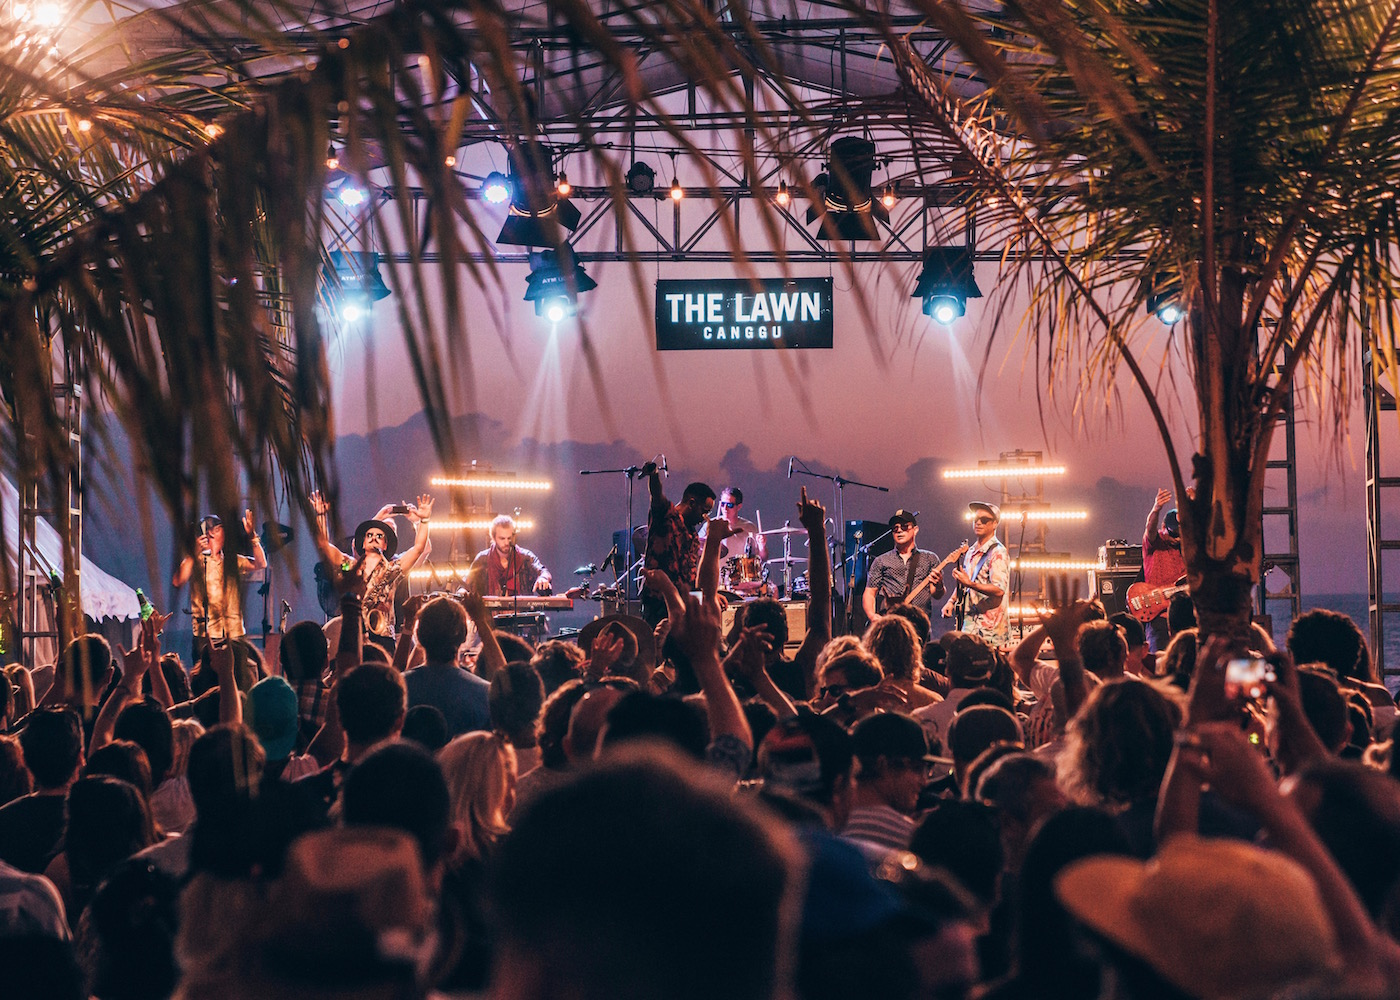 Party with live band at sunset at The Lawn beach club in Canggu, Bali, Indonesia